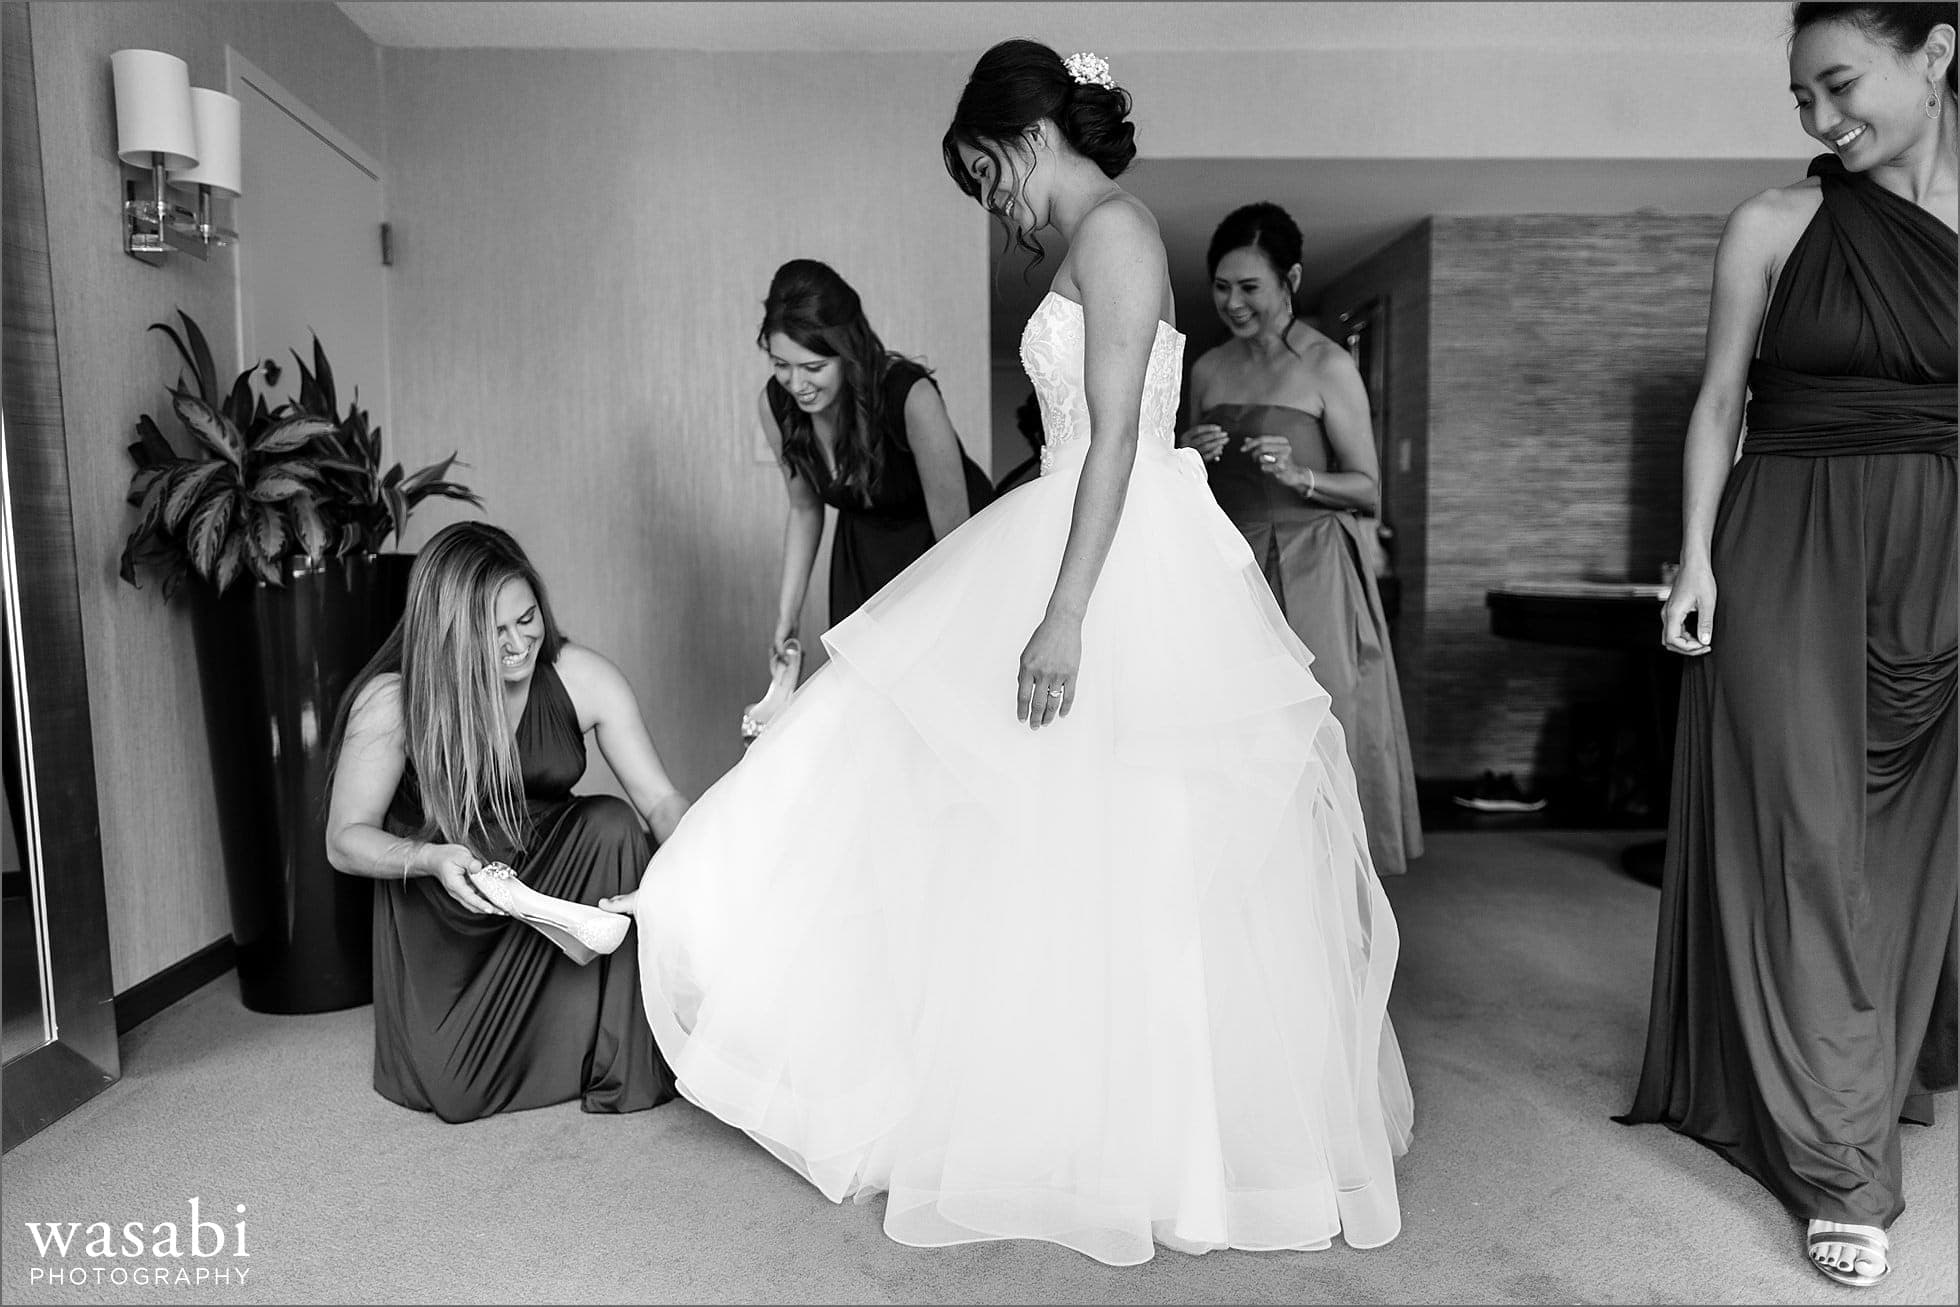 bridesmaid helps bride put on a shoe while getting ready for her wedding at Sheraton Grand Hotel in Chicago